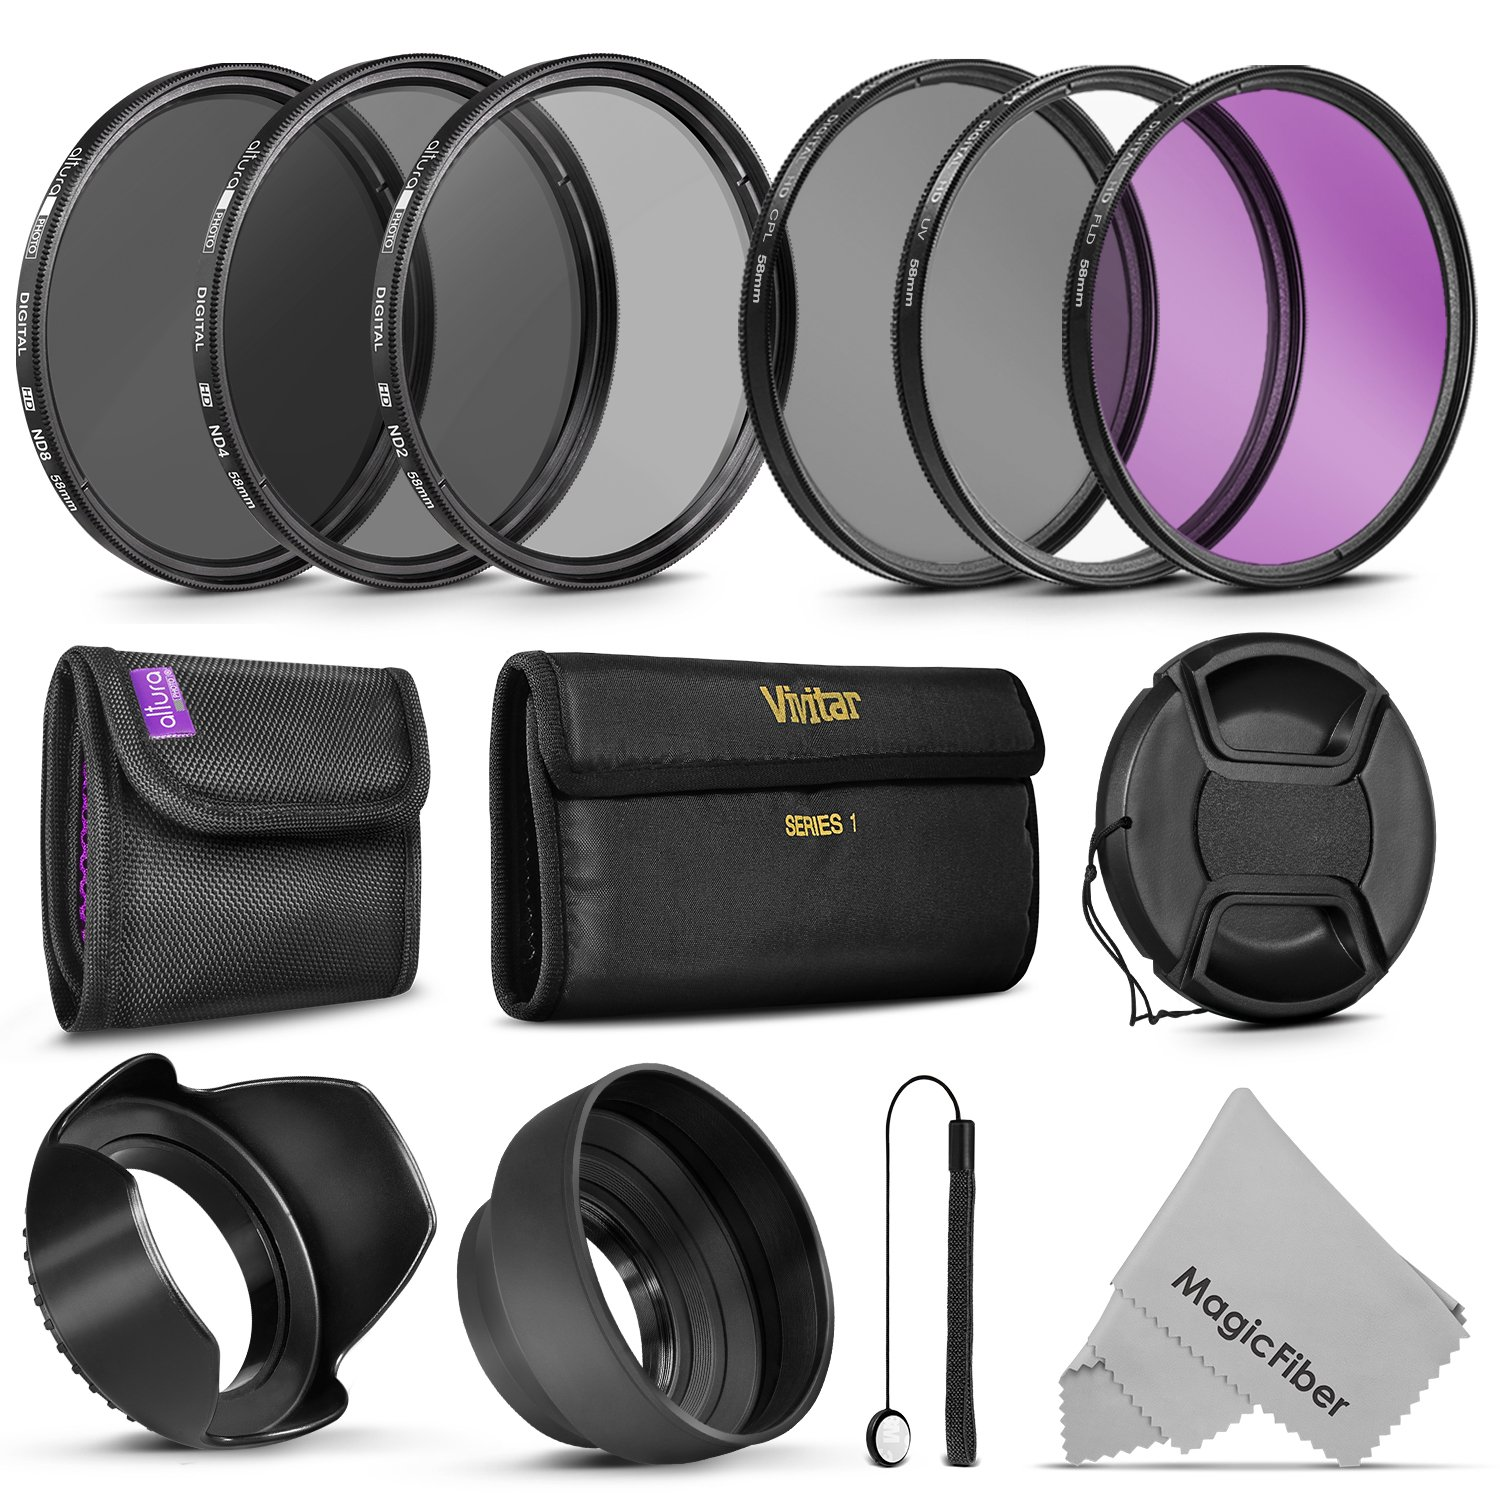 58MM Vivitar UV CPL FLD Filters, Altura Photo ND Filter Set, Collapsible Rubber Lens Hood, Tulip Lens Hood Bundle for Lenses with a 58mm Filter Size by Goja